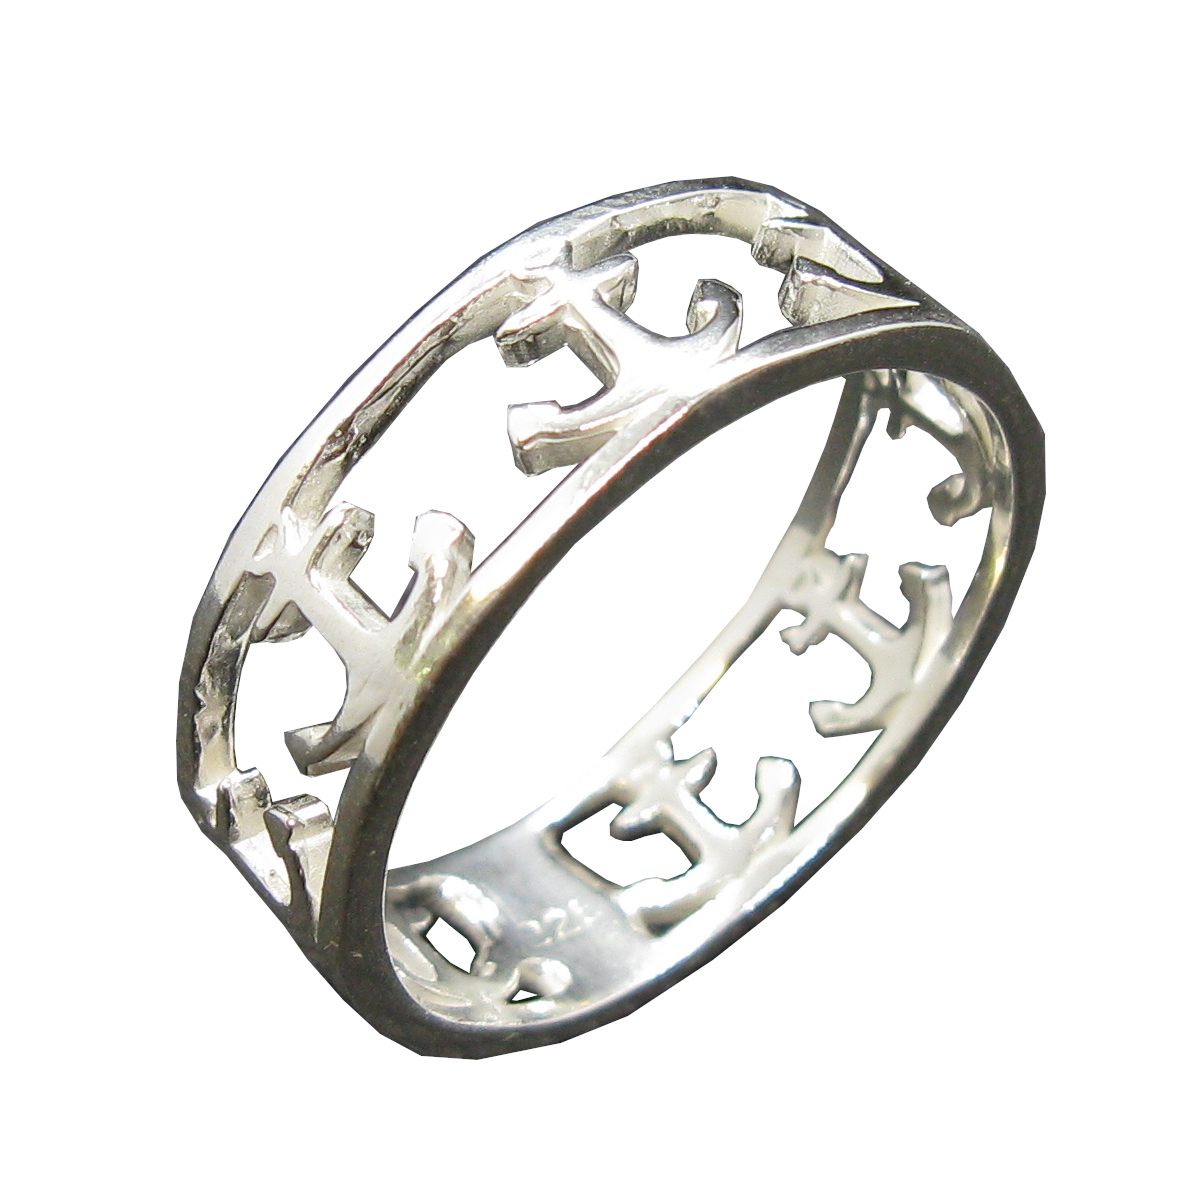 Silver ring - R002009